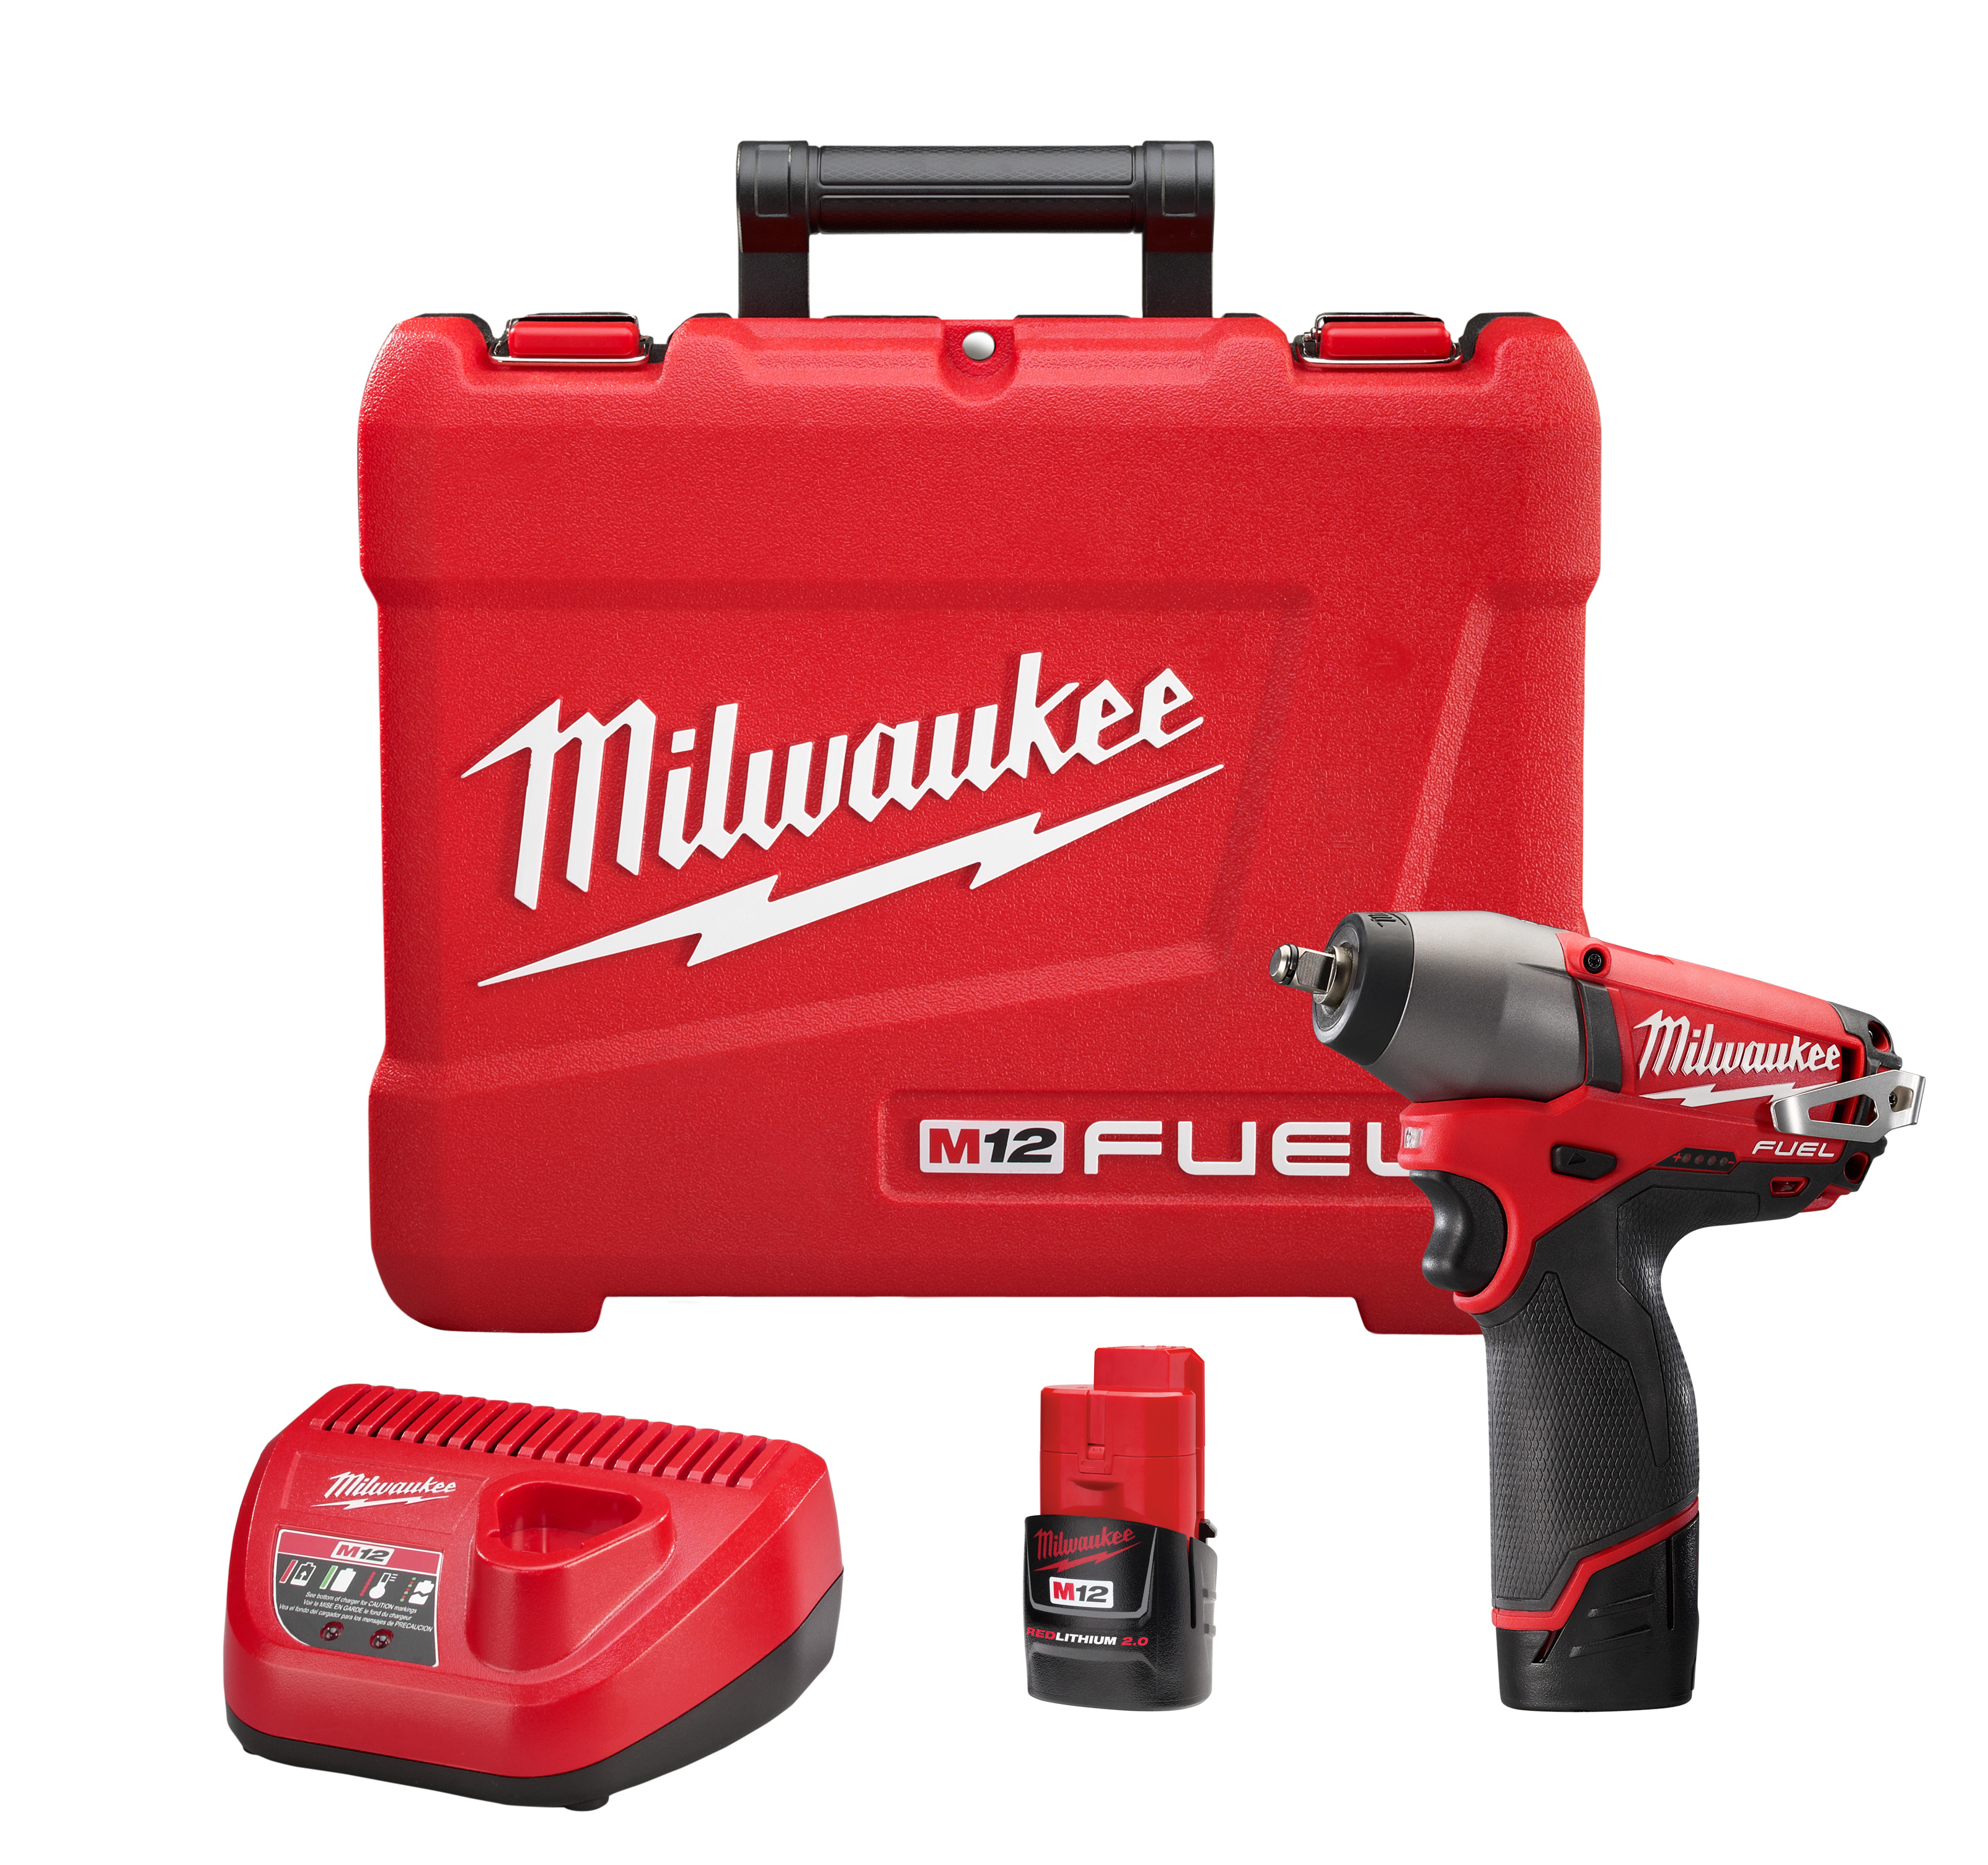 Milwaukee® M12™ FUEL™ 2454-22 Cordless Impact Wrench Kit, 3/8 in Straight Drive, 0 to 2650/0 to 3500 bpm, 117 ft-lb Torque, 12 VDC, 6-1/2 in OAL